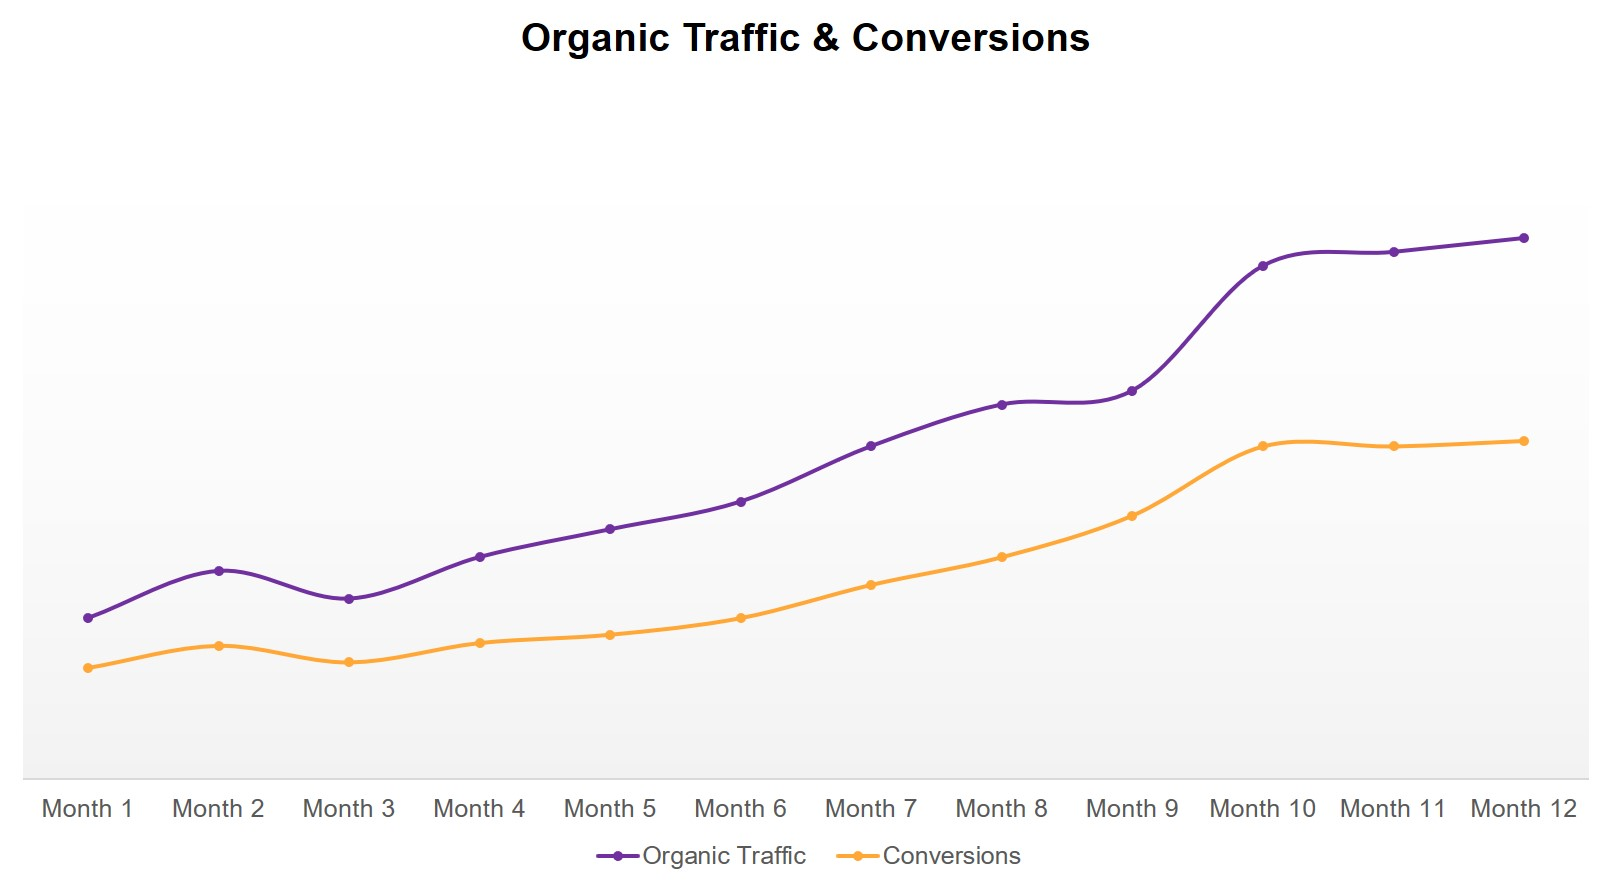 SEO Case Study - rise in organic traffic and conversions